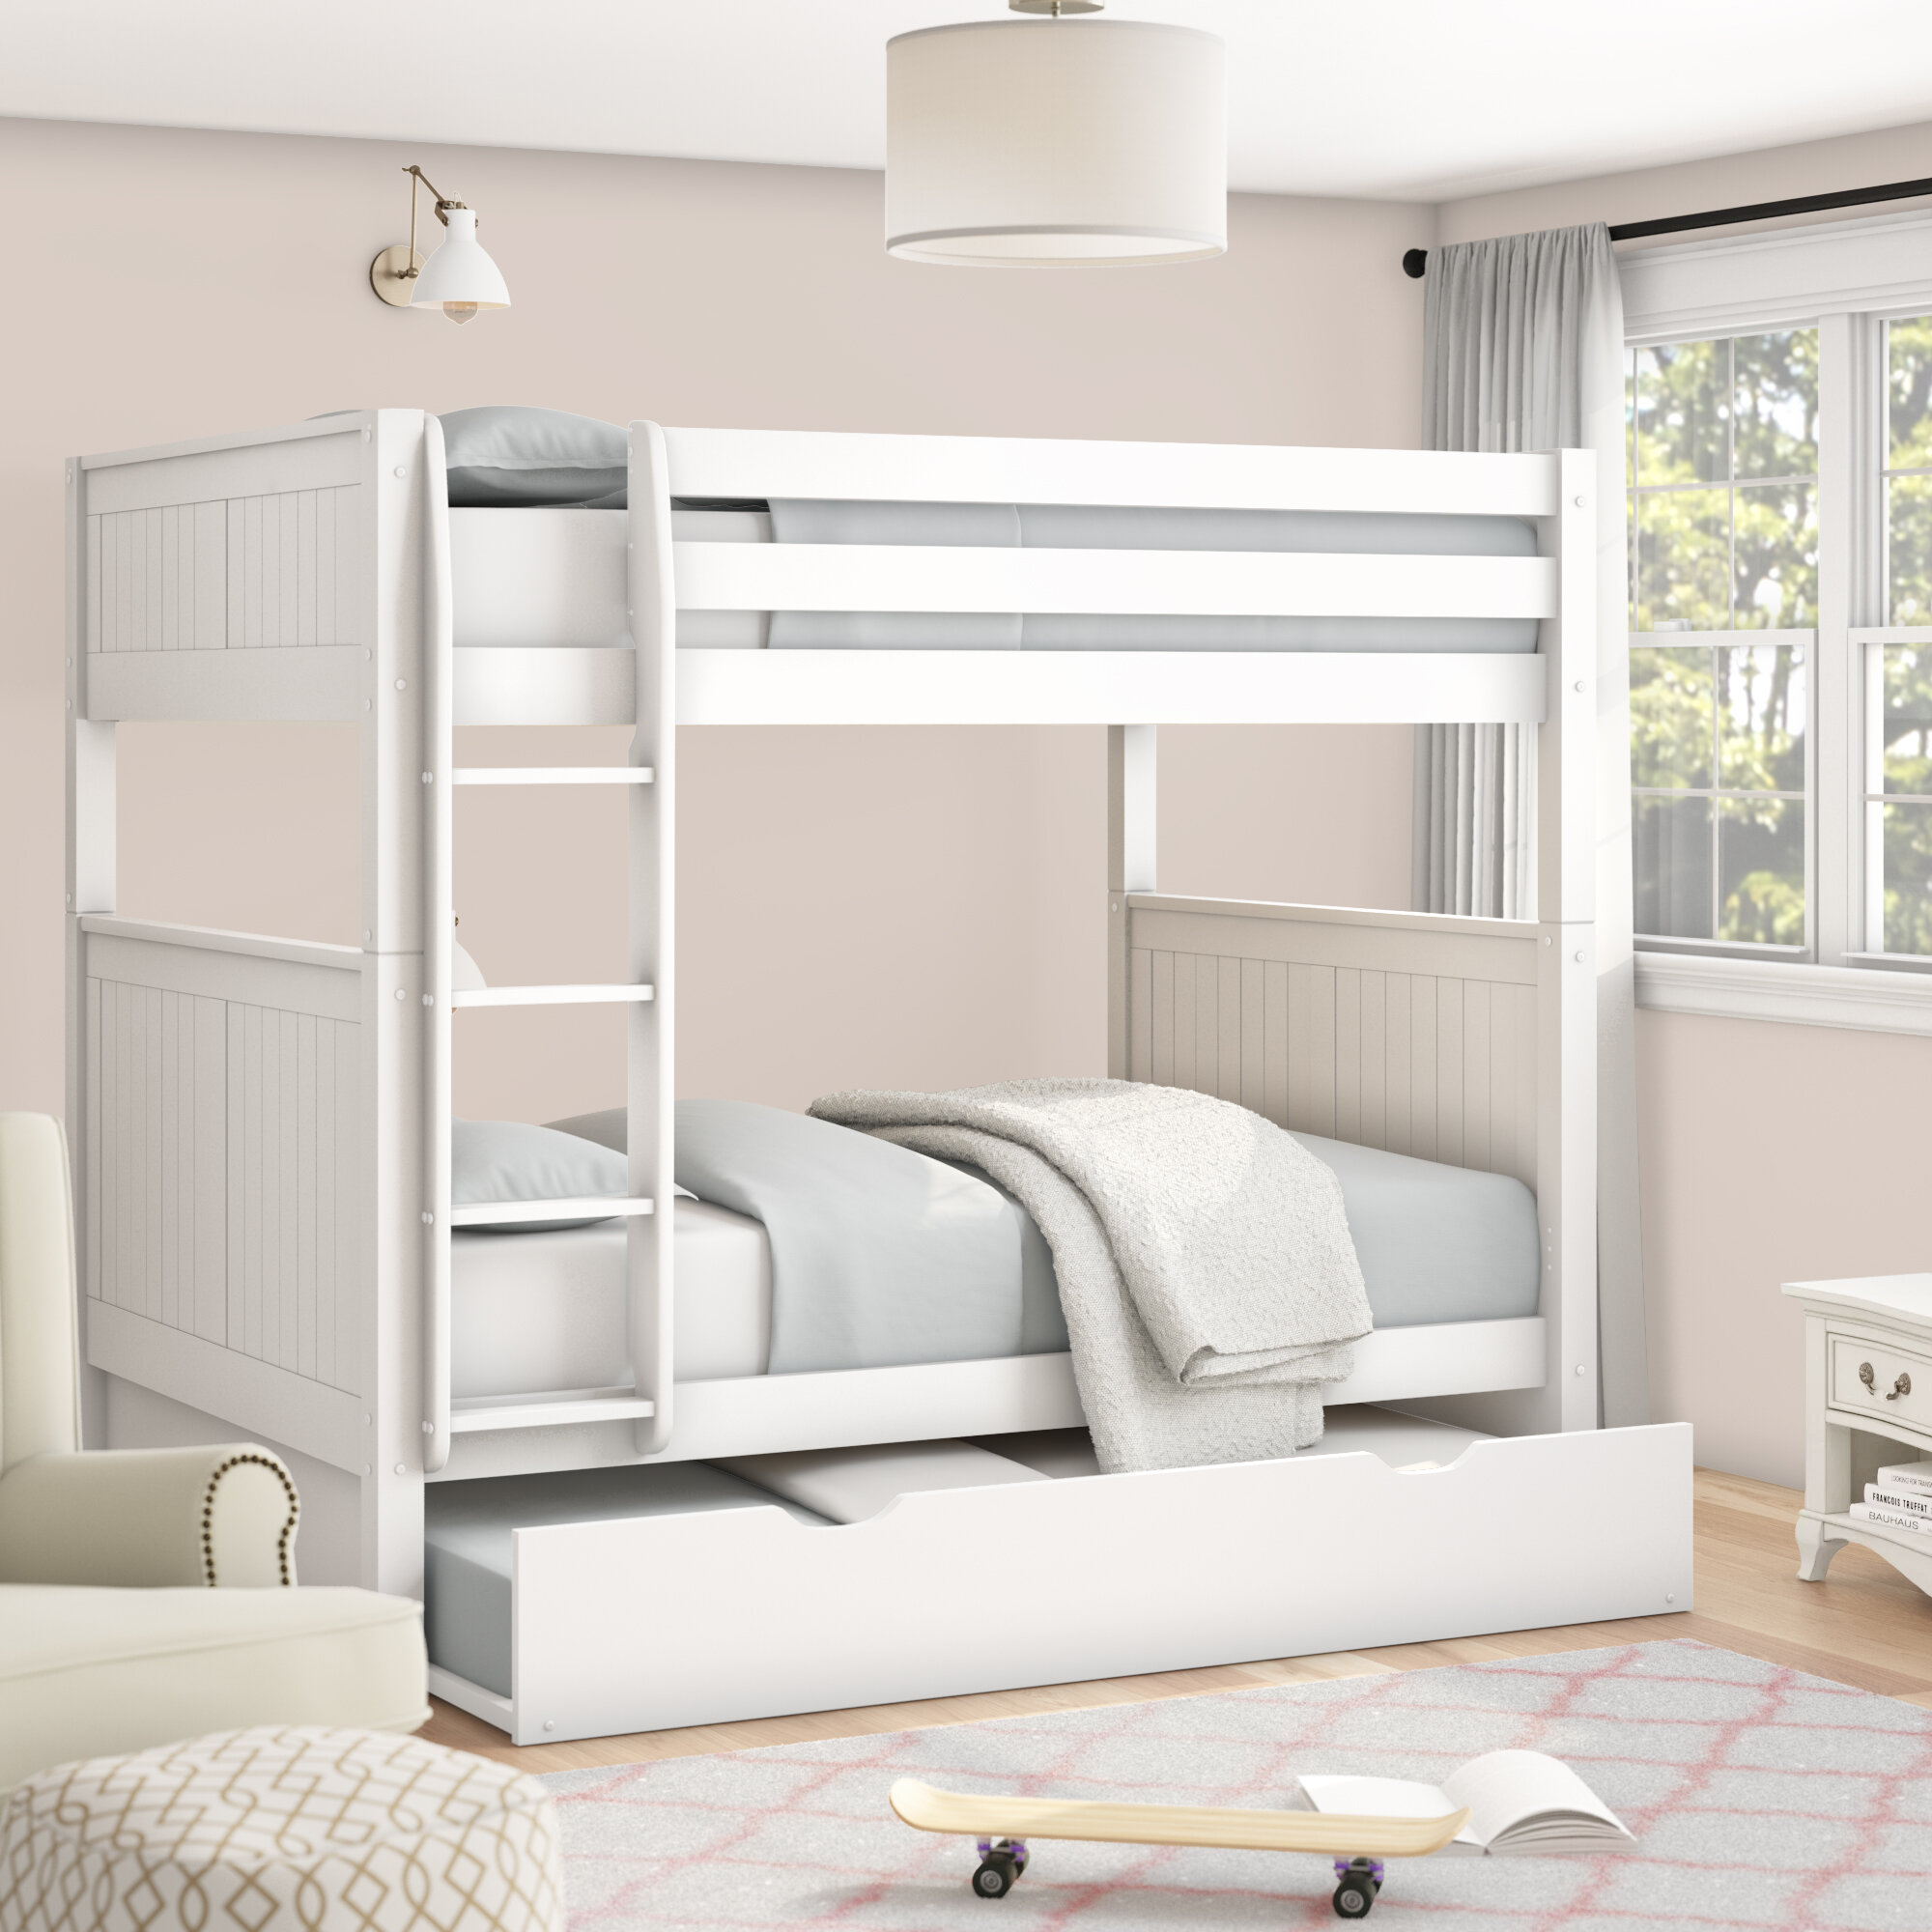 Picture of: 6 Twin Size Bunk Bed Spring Mattresses 2 Piece Trundle Daybeds Children Bedroom Mattresses Beds Mattresses